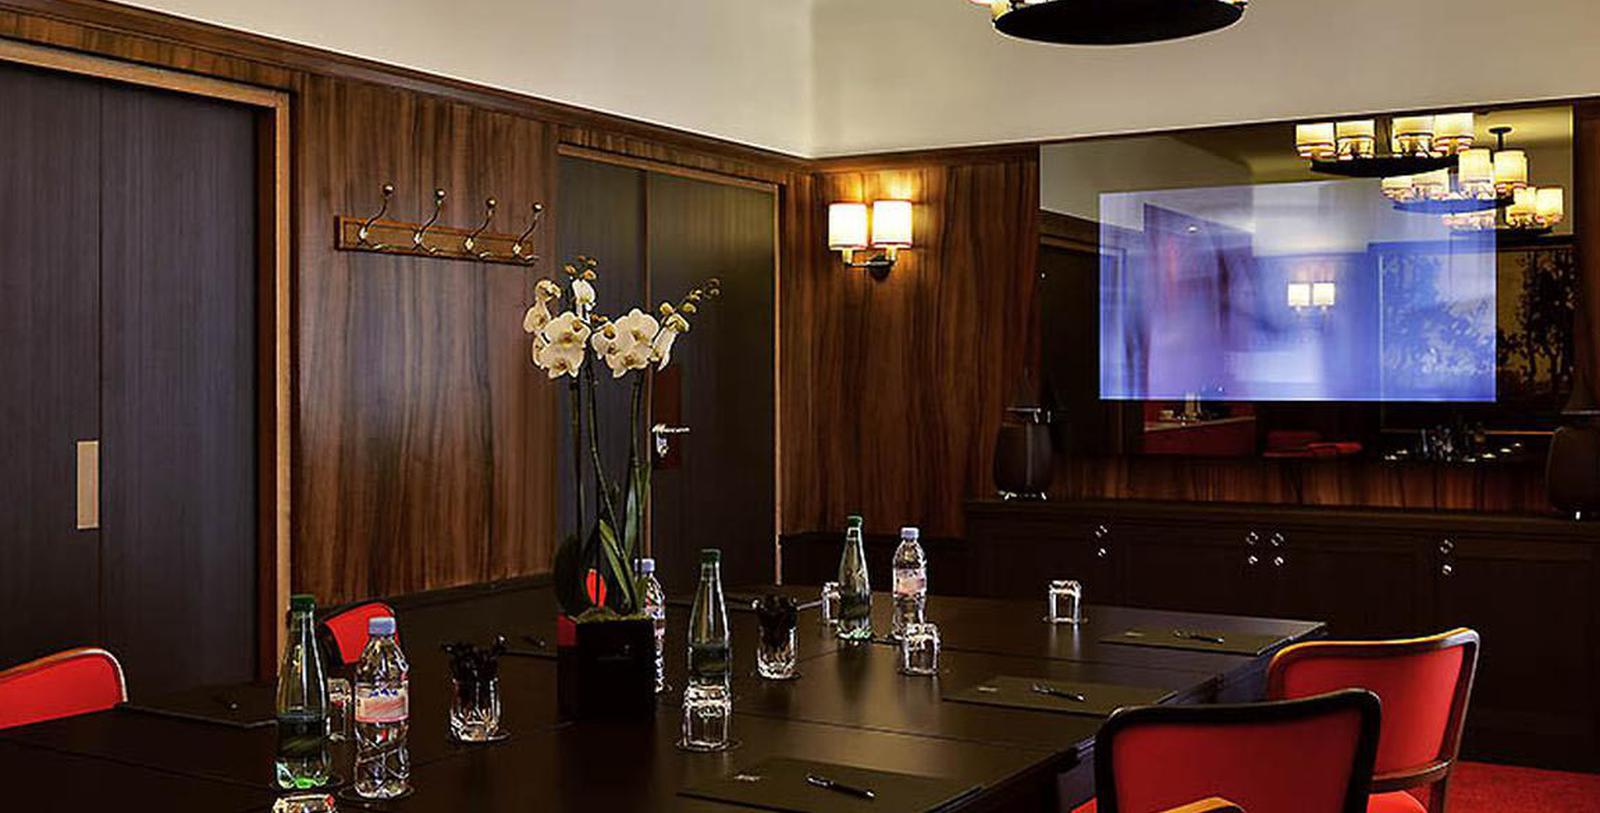 Image of Meeting Room Hotel Exterior Hôtel Carlton Lyon - MGallery by Sofitel, 1894, Member of Historic Hotels Worldwide, in Lyon, France, Experience